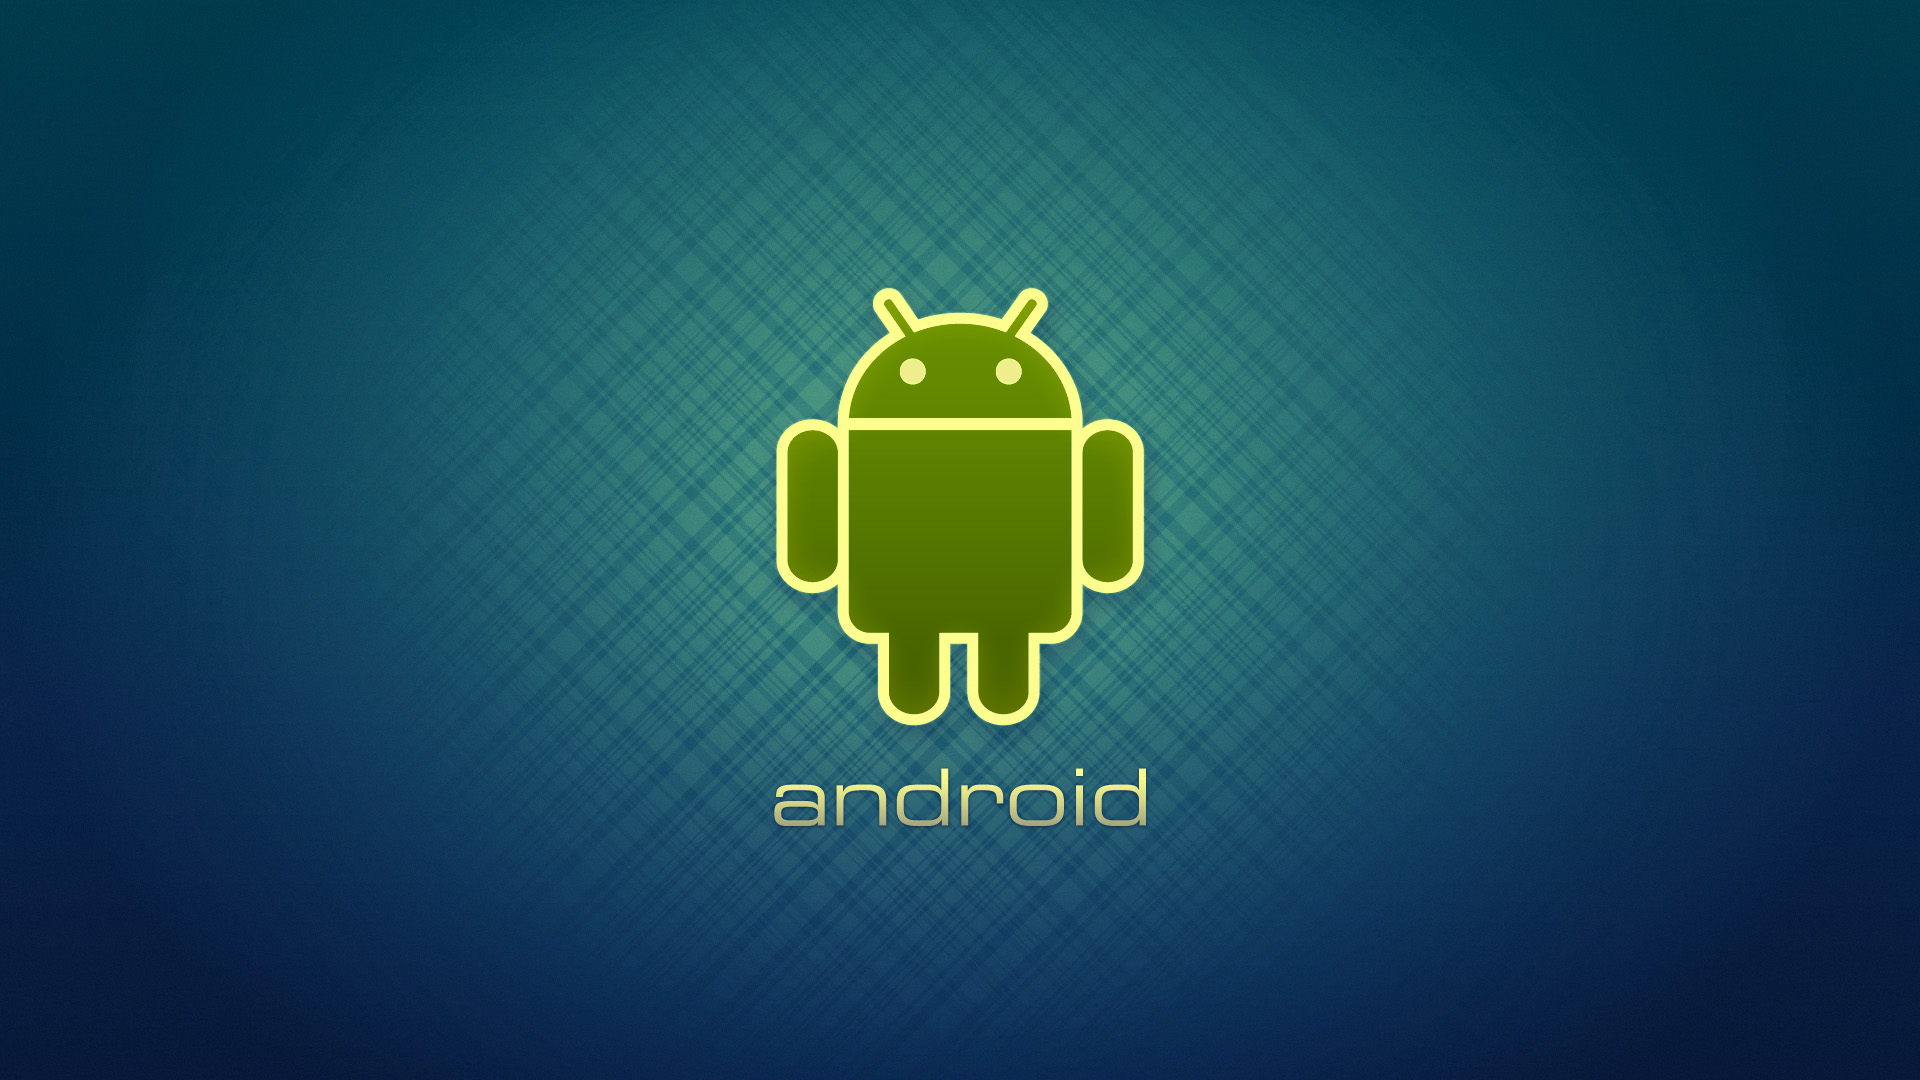 Description Google Android Wallpaper is a hi res Wallpaper for pc 1920x1080